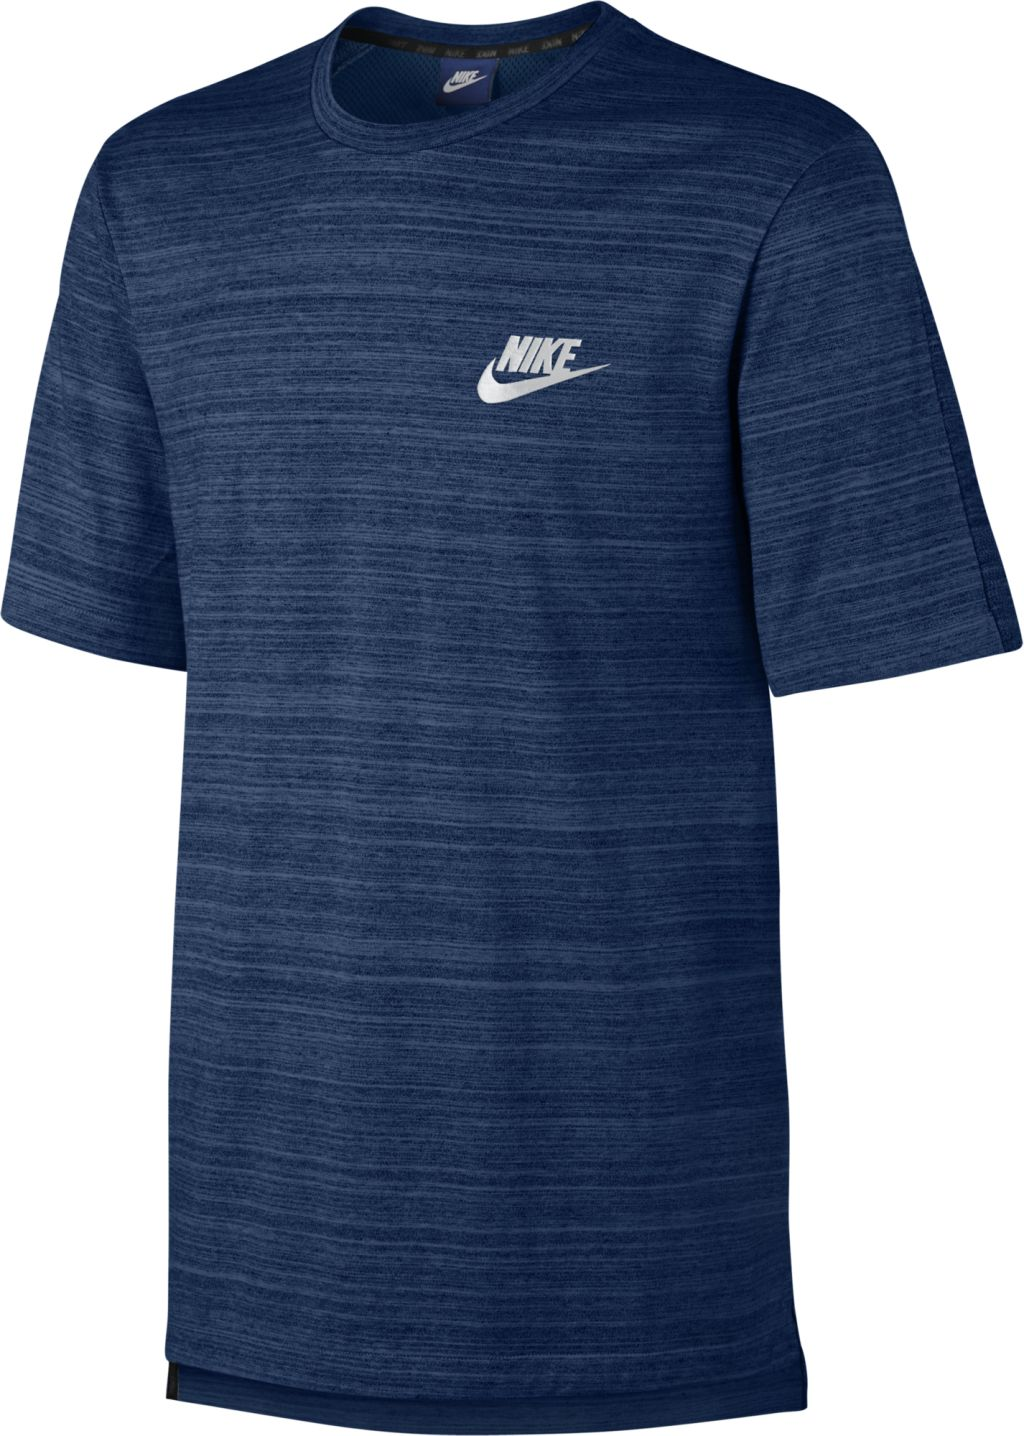 Nike Sportswear Advance 15 Top M